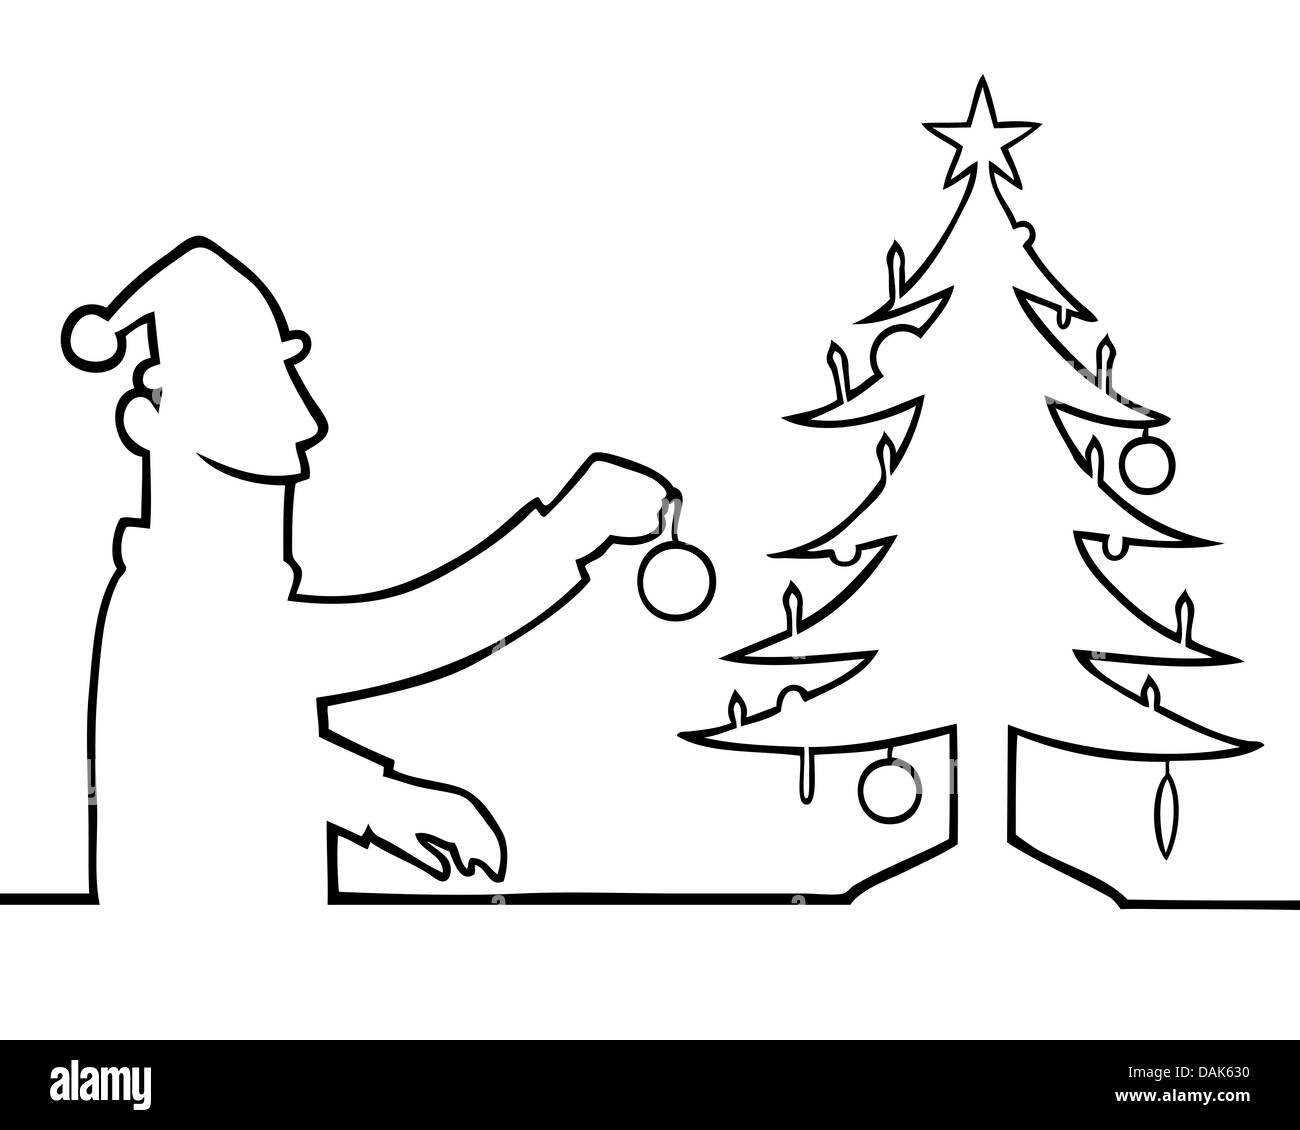 Black People Decorating For Christmas black line art illustration of a man decorating a christmas tree